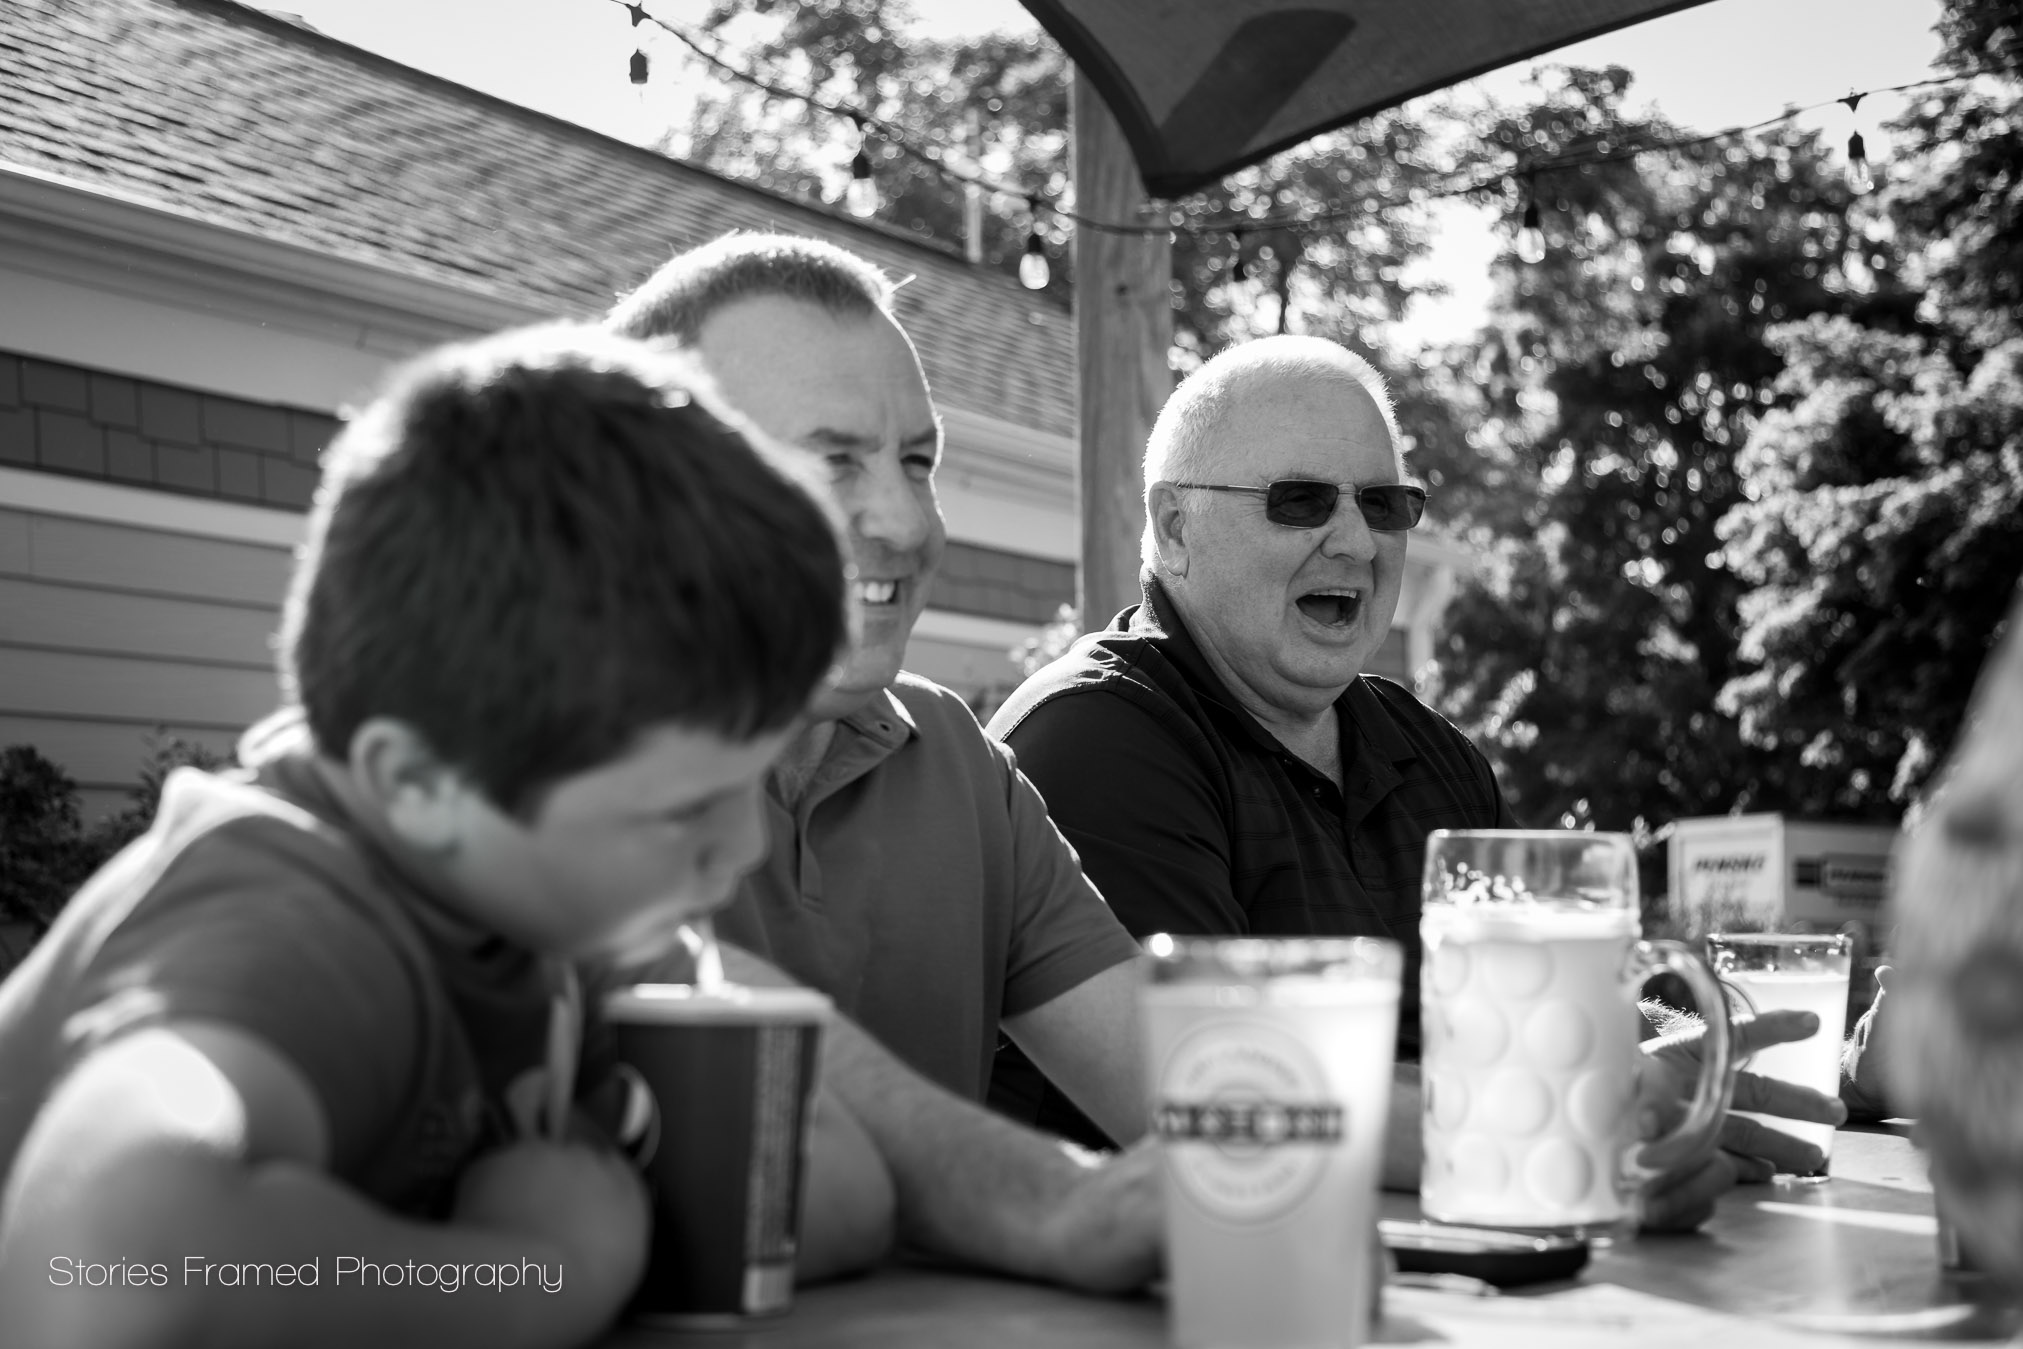 Grandpa enjoying a laugh during Father's Day photos.